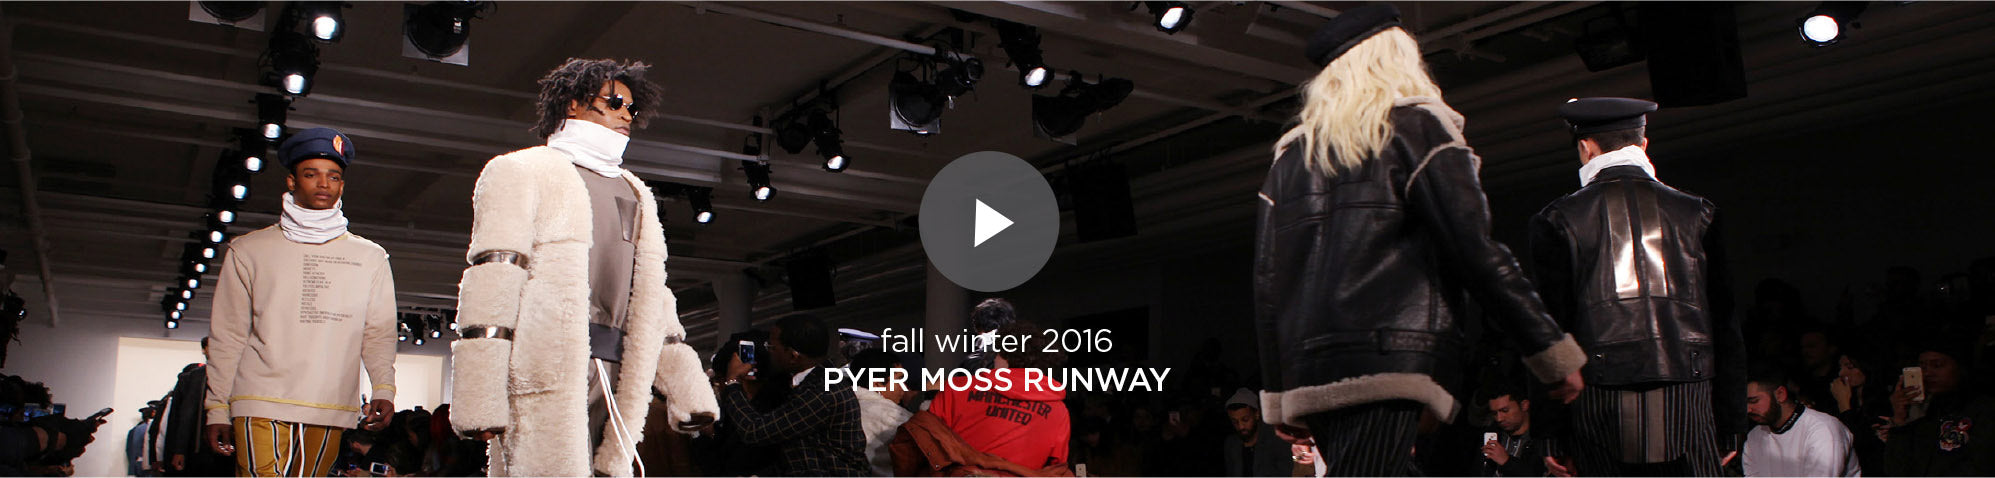 Fall Winter 2016 - Pyer Moss Runway